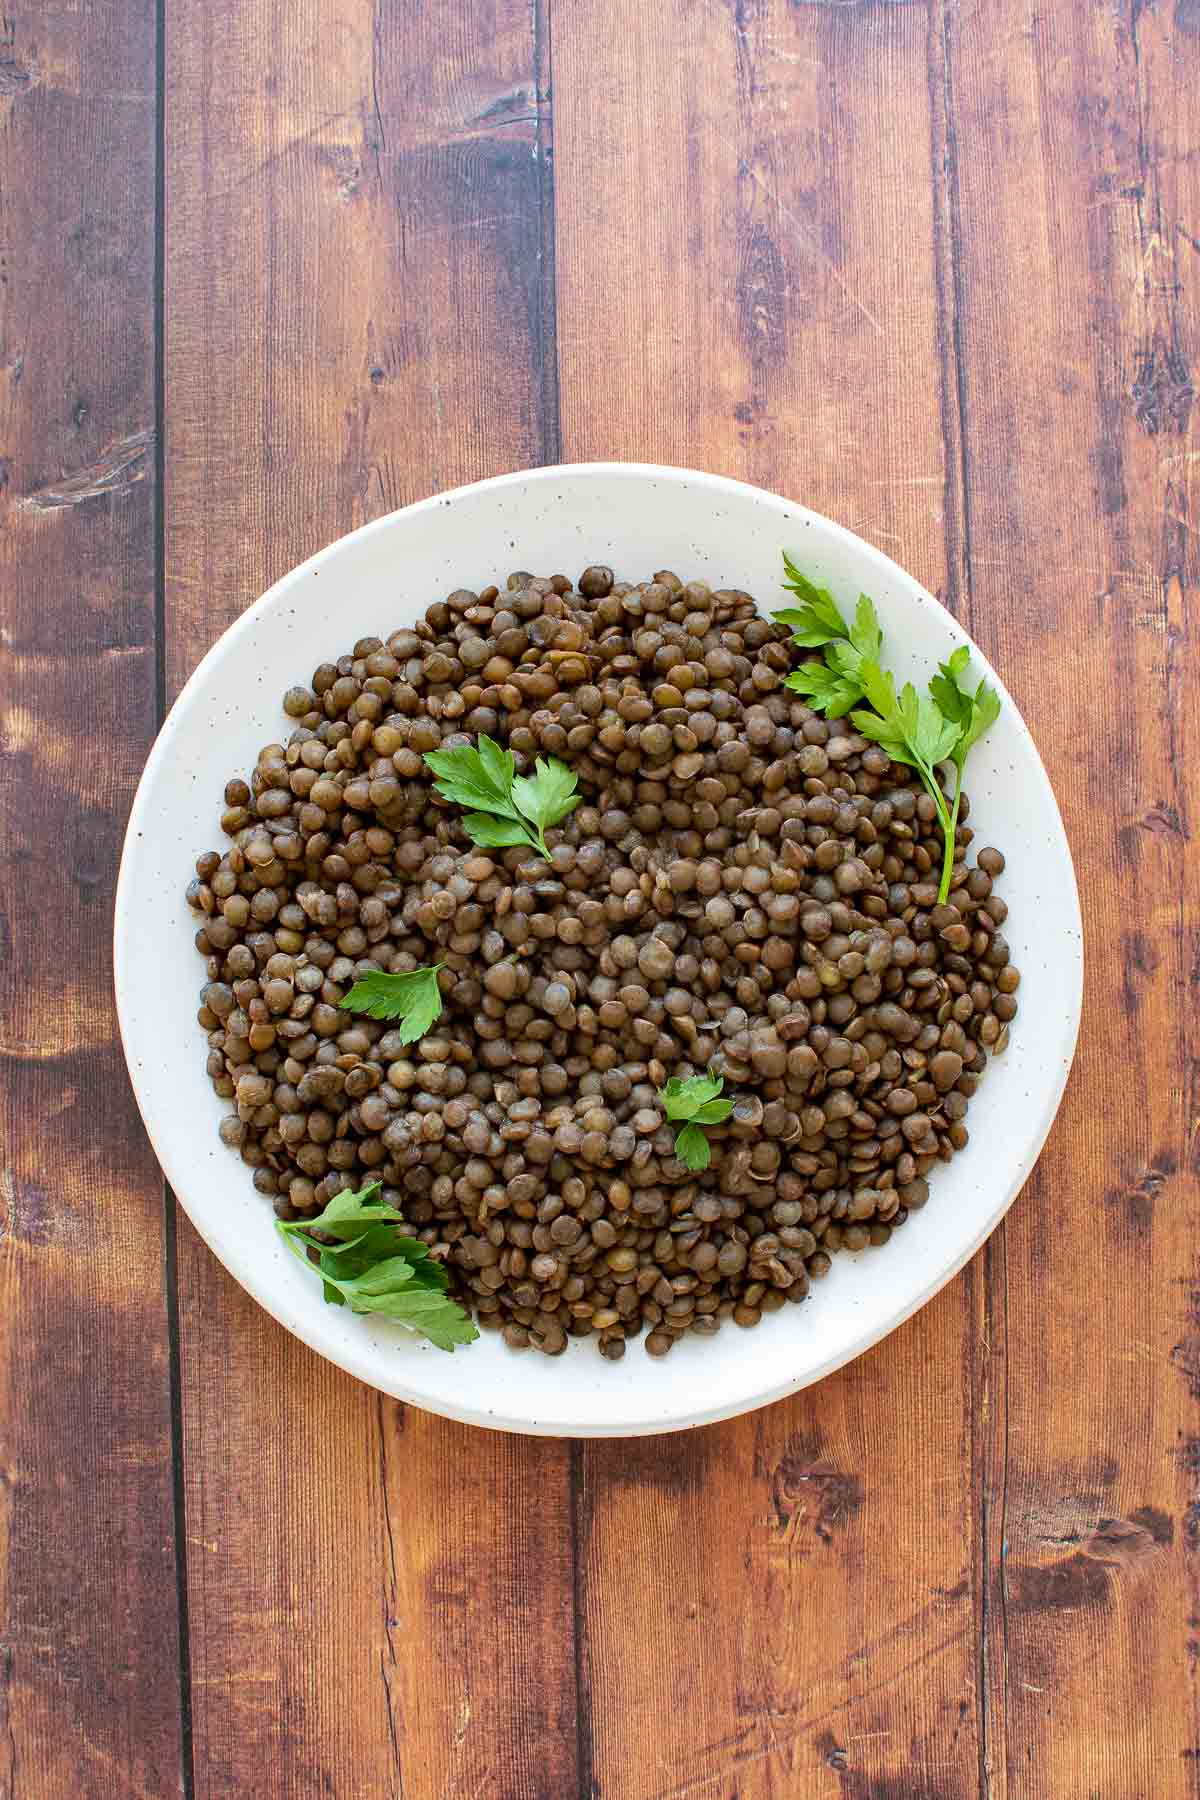 A plate of cooked lentils on a wooden table.